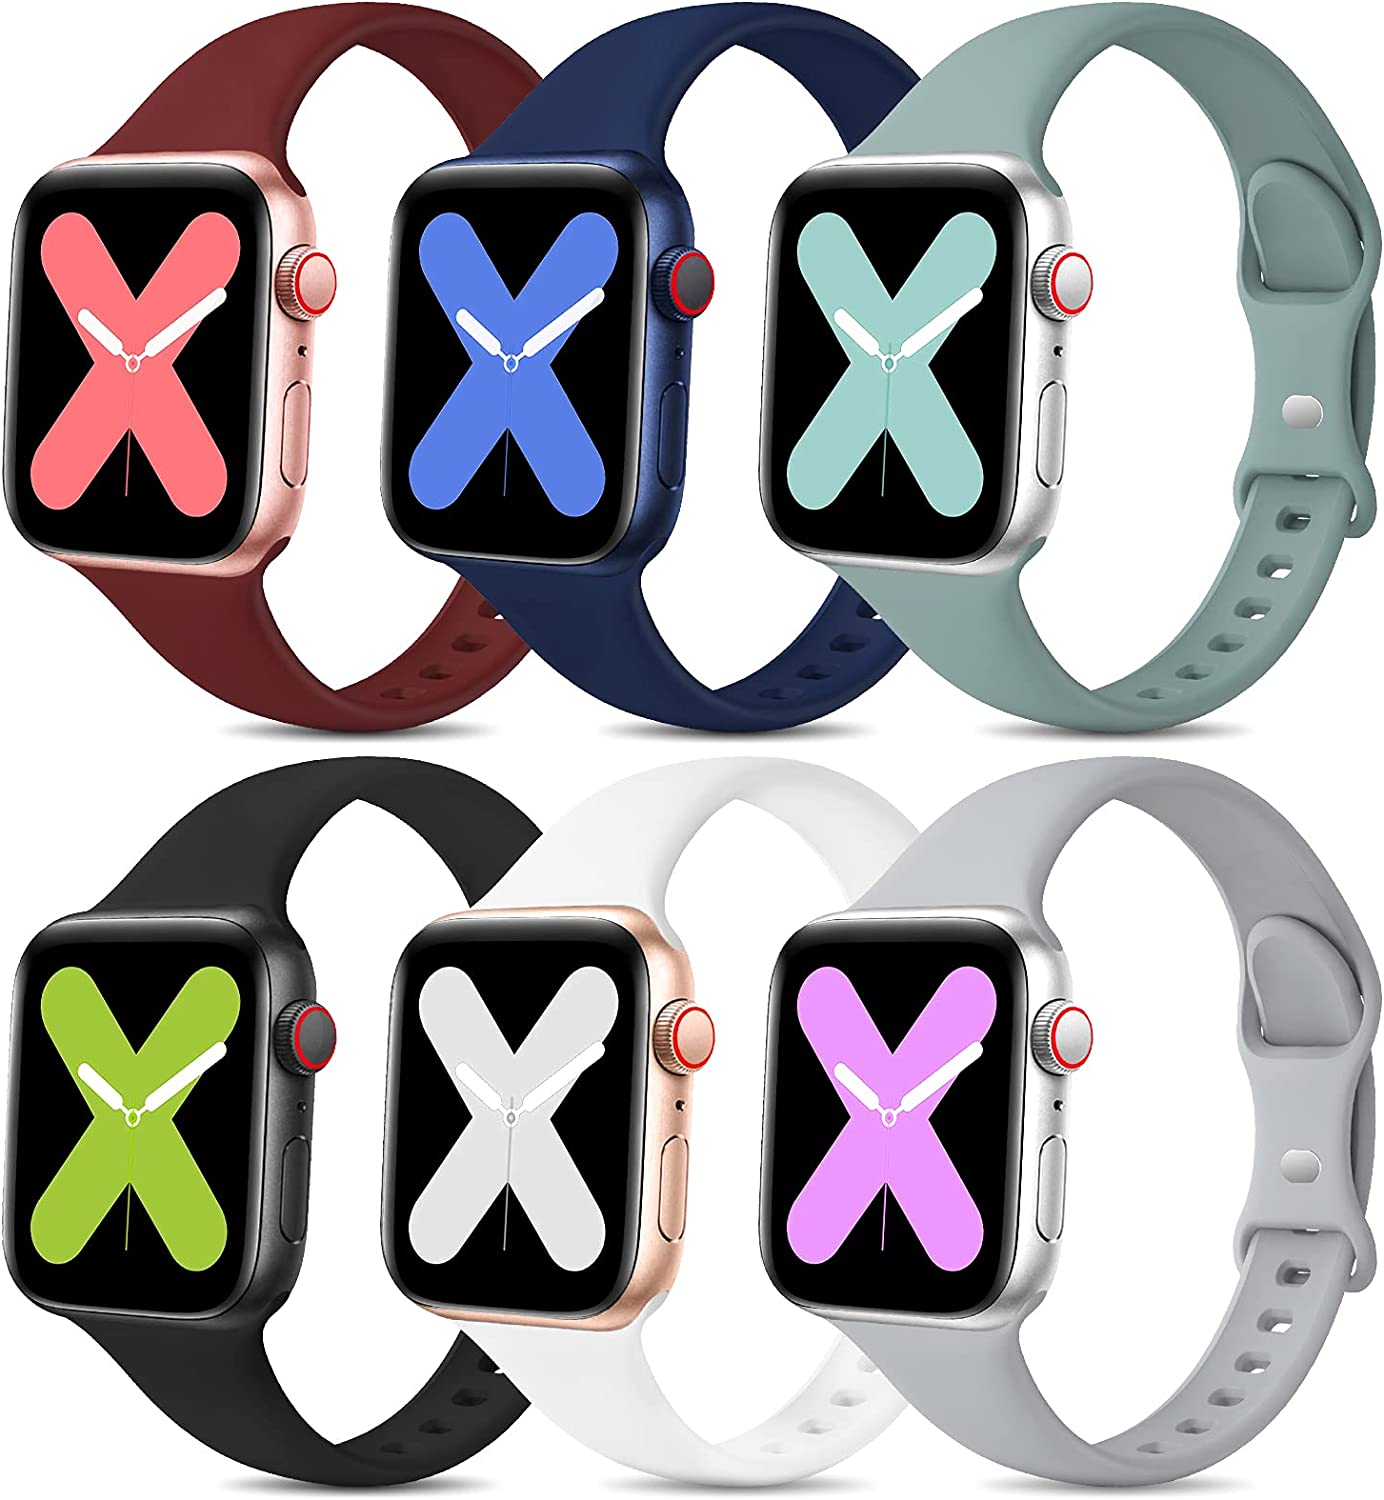 EOMTAM 6 Pack Women Slim Sport Bands Compatible with Apple Watch Band 38mm 40mm Lady Men,Girl Thin Silicone Soft Replacement Strap Wristband for iWatch Series 6 5 4 3 2 1 SE(38MM/40MM,Color3)